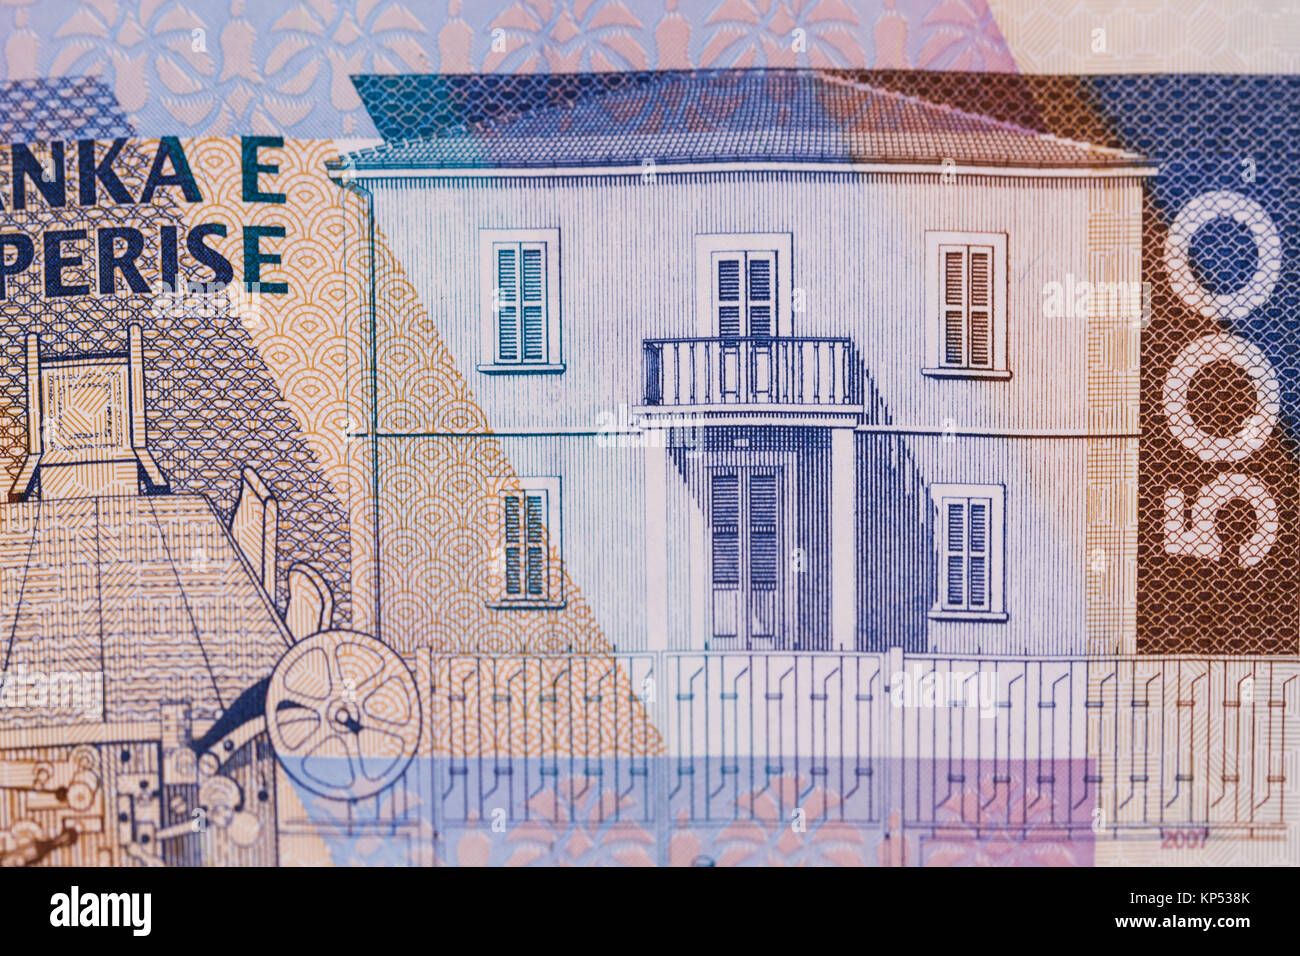 Macro close up of Albanian currency Lek banknote of 500